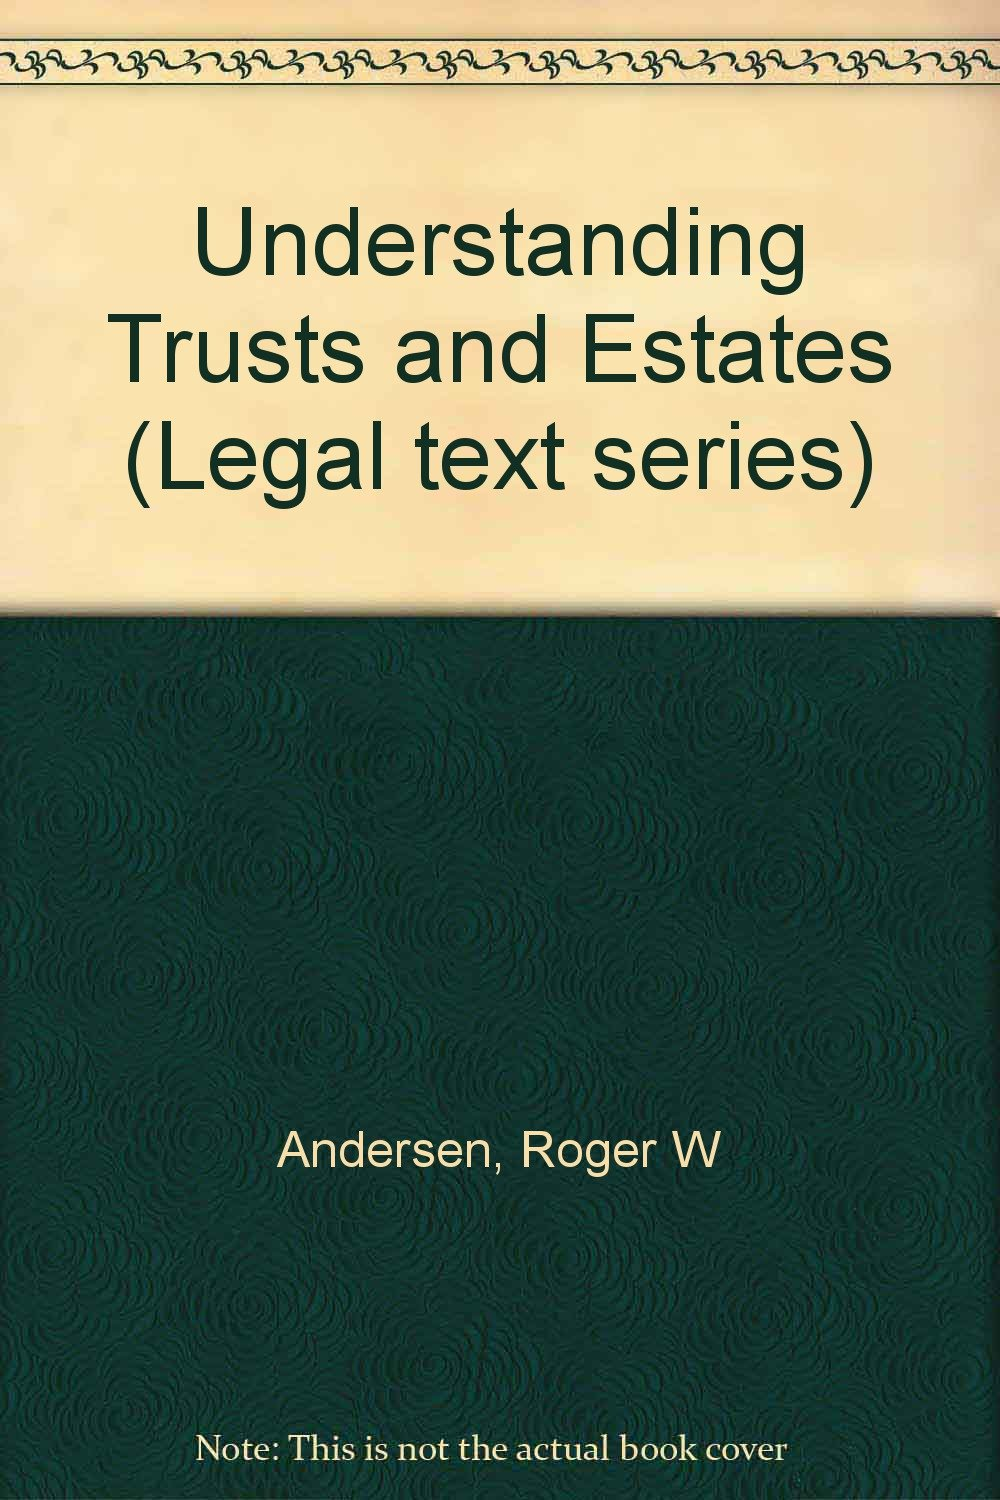 Buy Understanding Trusts and Estates (Legal text series) Book Online at Low  Prices in India | Understanding Trusts and Estates (Legal text series)  Reviews ...